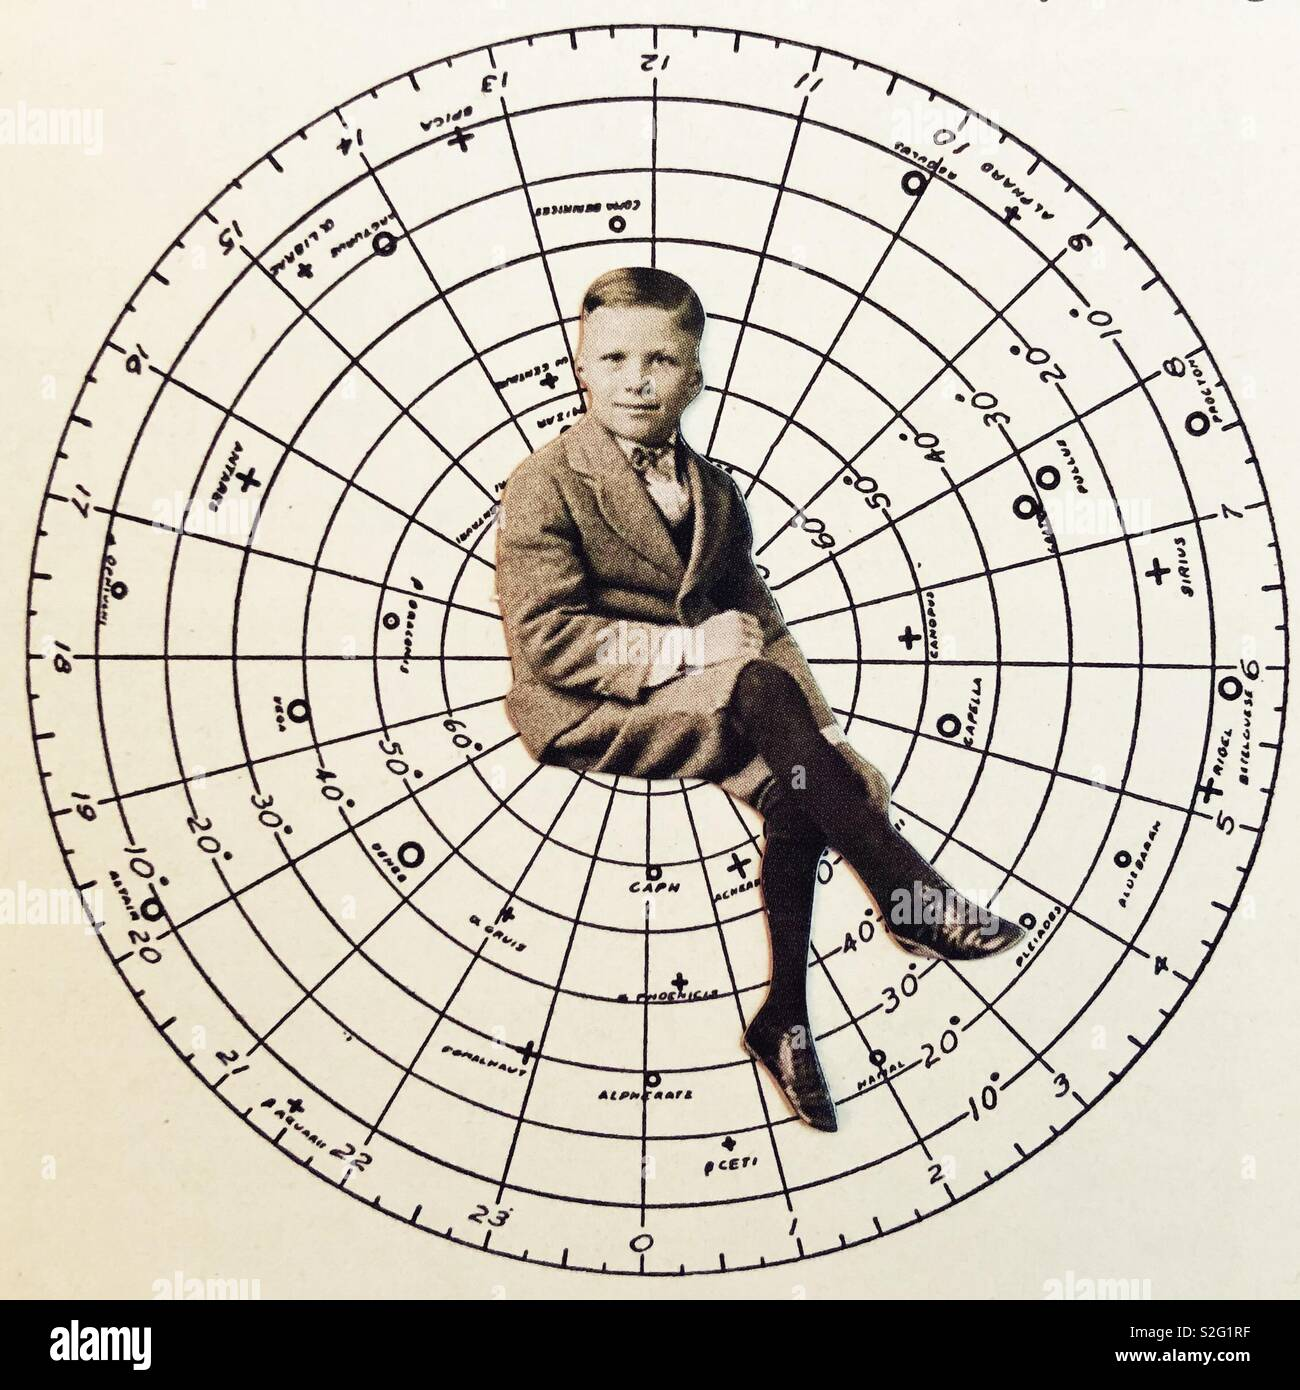 Collage of vintage round chart and boy. - Stock Image